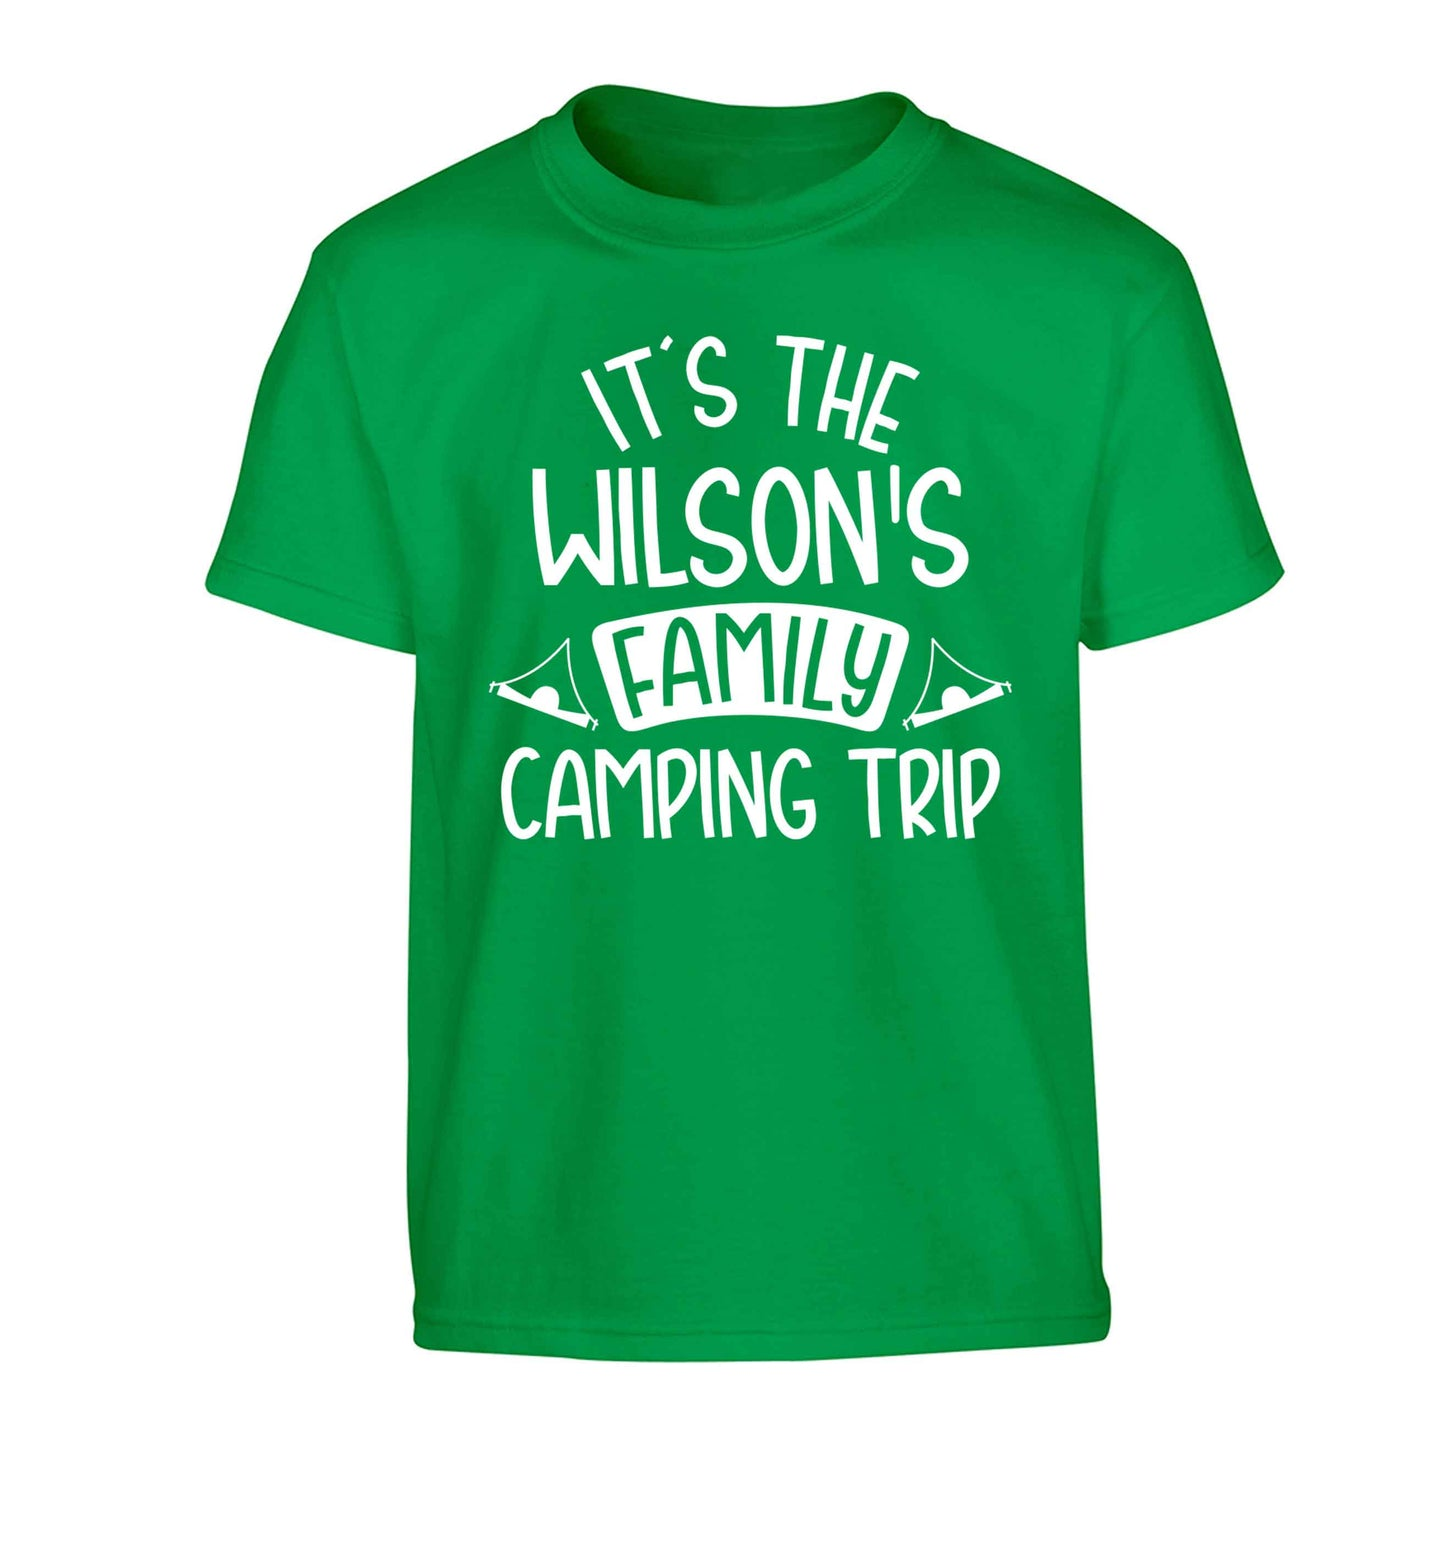 It's the Wilson's family camping trip personalised Children's green Tshirt 12-13 Years